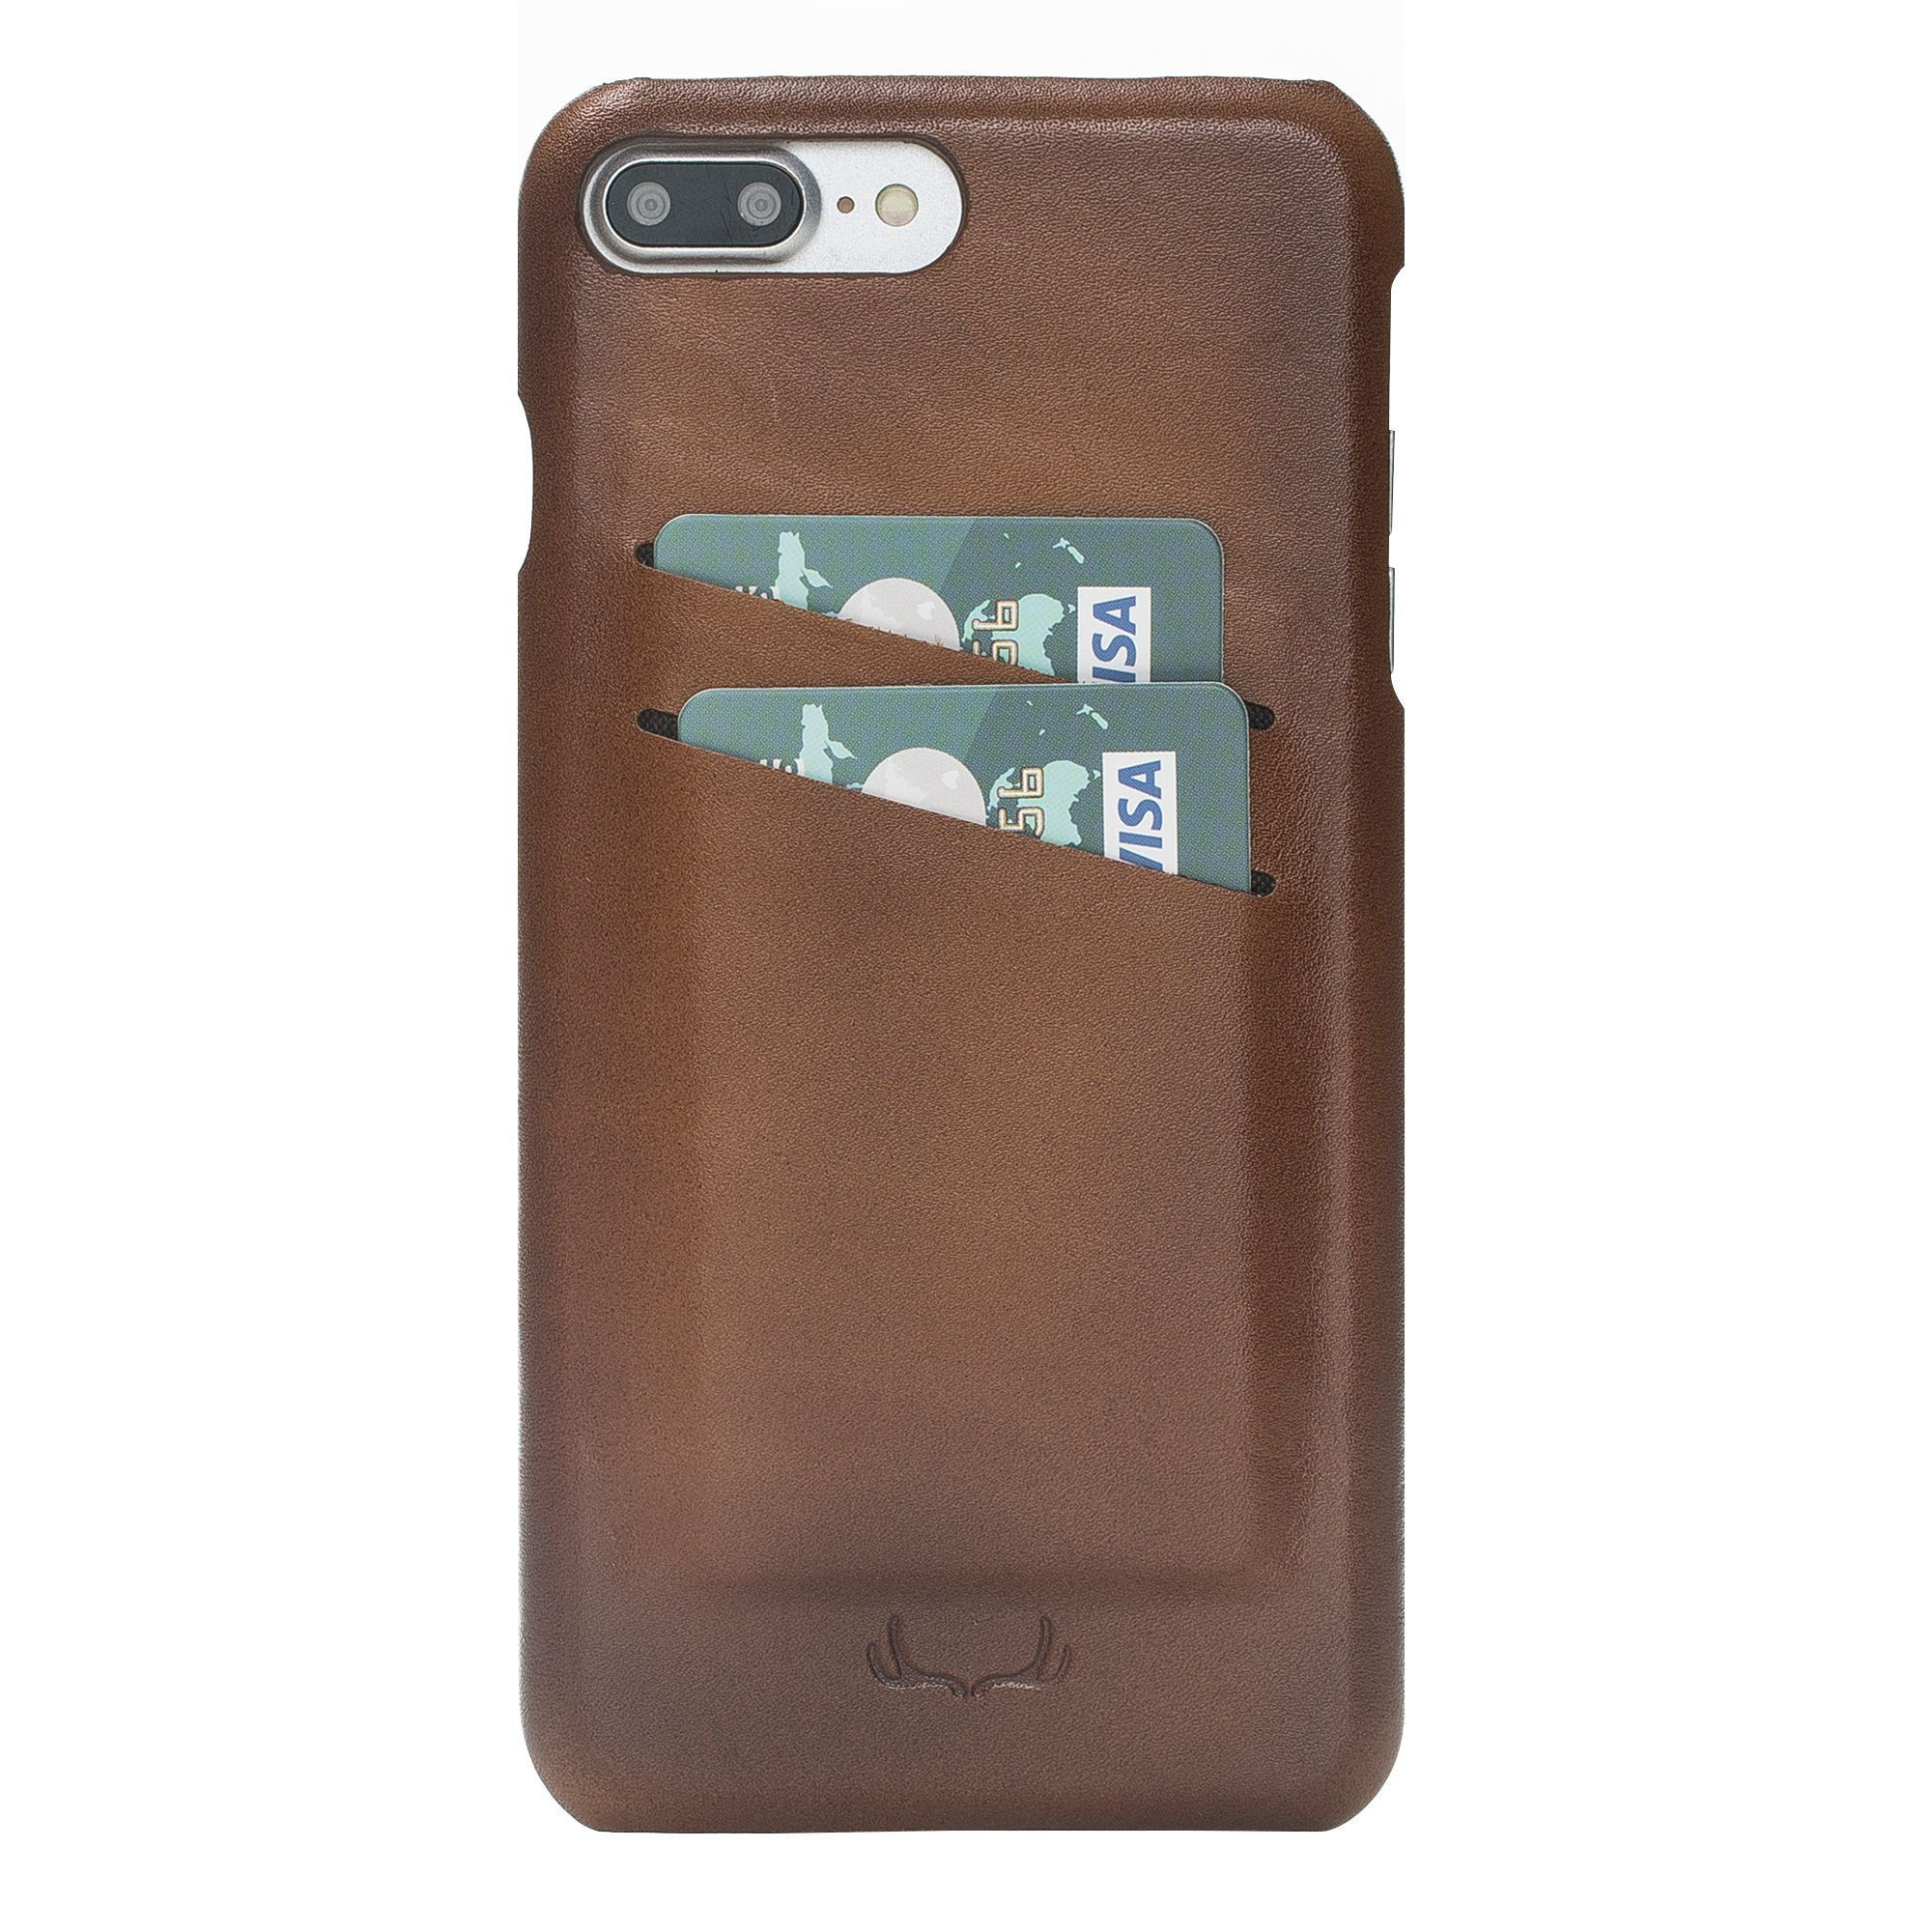 BNT Ultimate Jacket Credit Card Leather Cases - Rustic - iPhone 7 Plus / 8 Plus - Brown